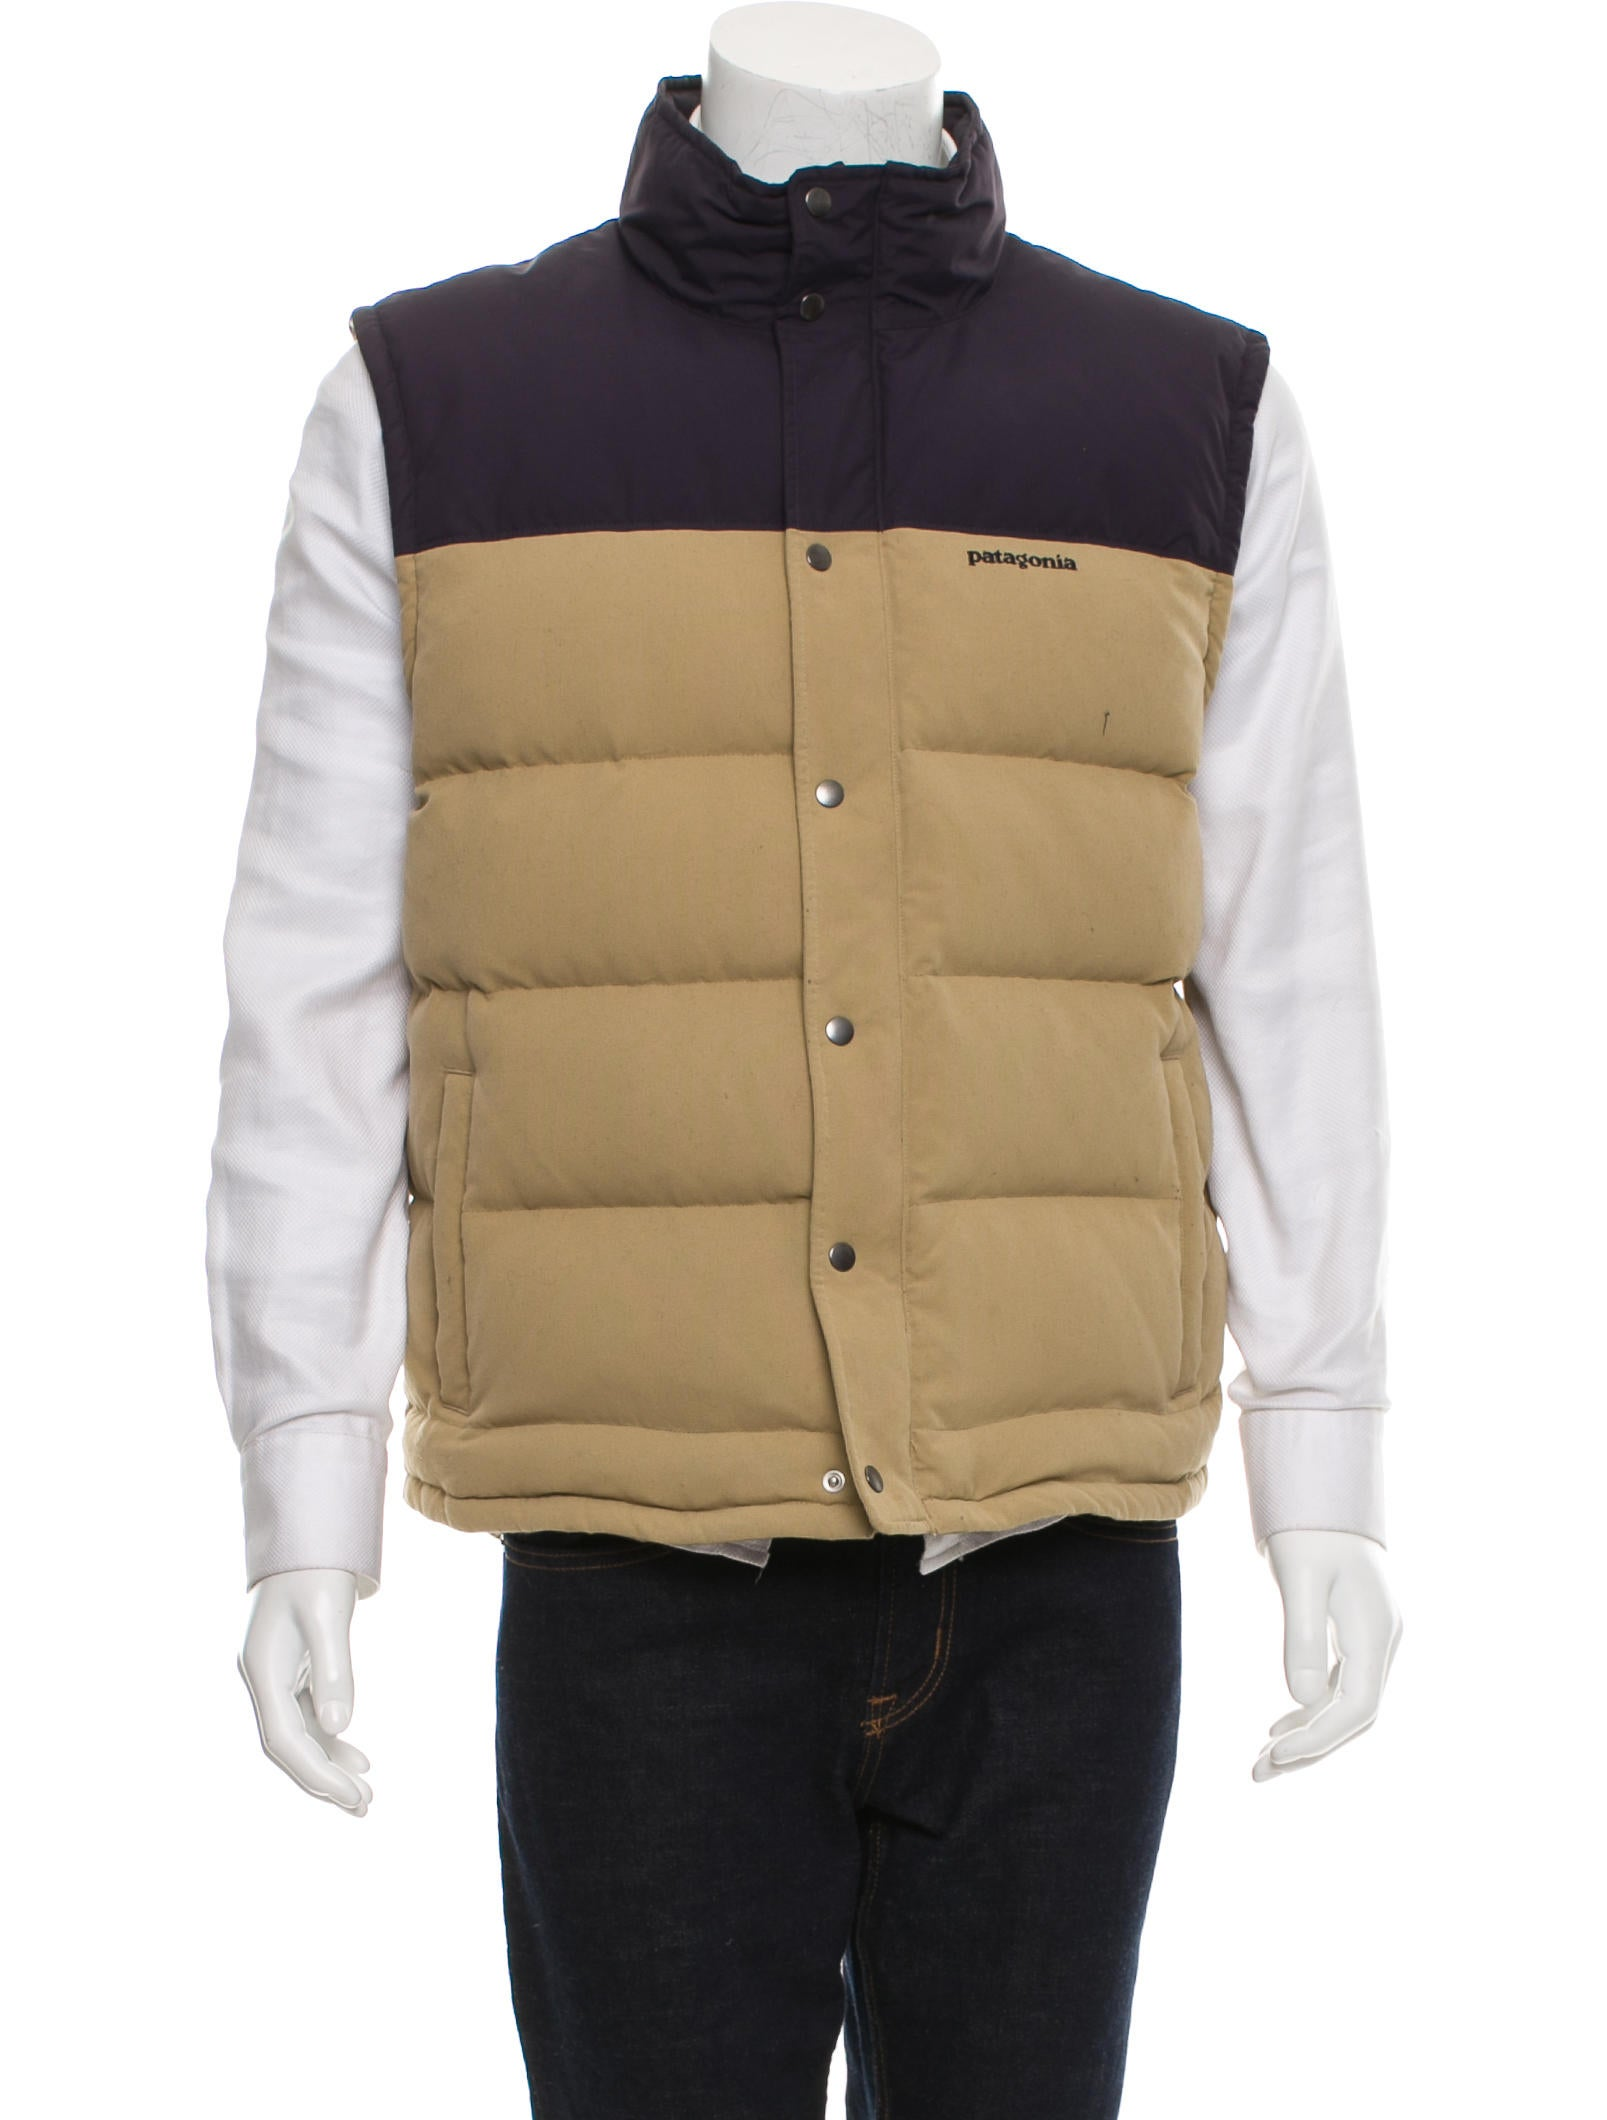 Find great deals on eBay for mens quilted vest. Shop with confidence.